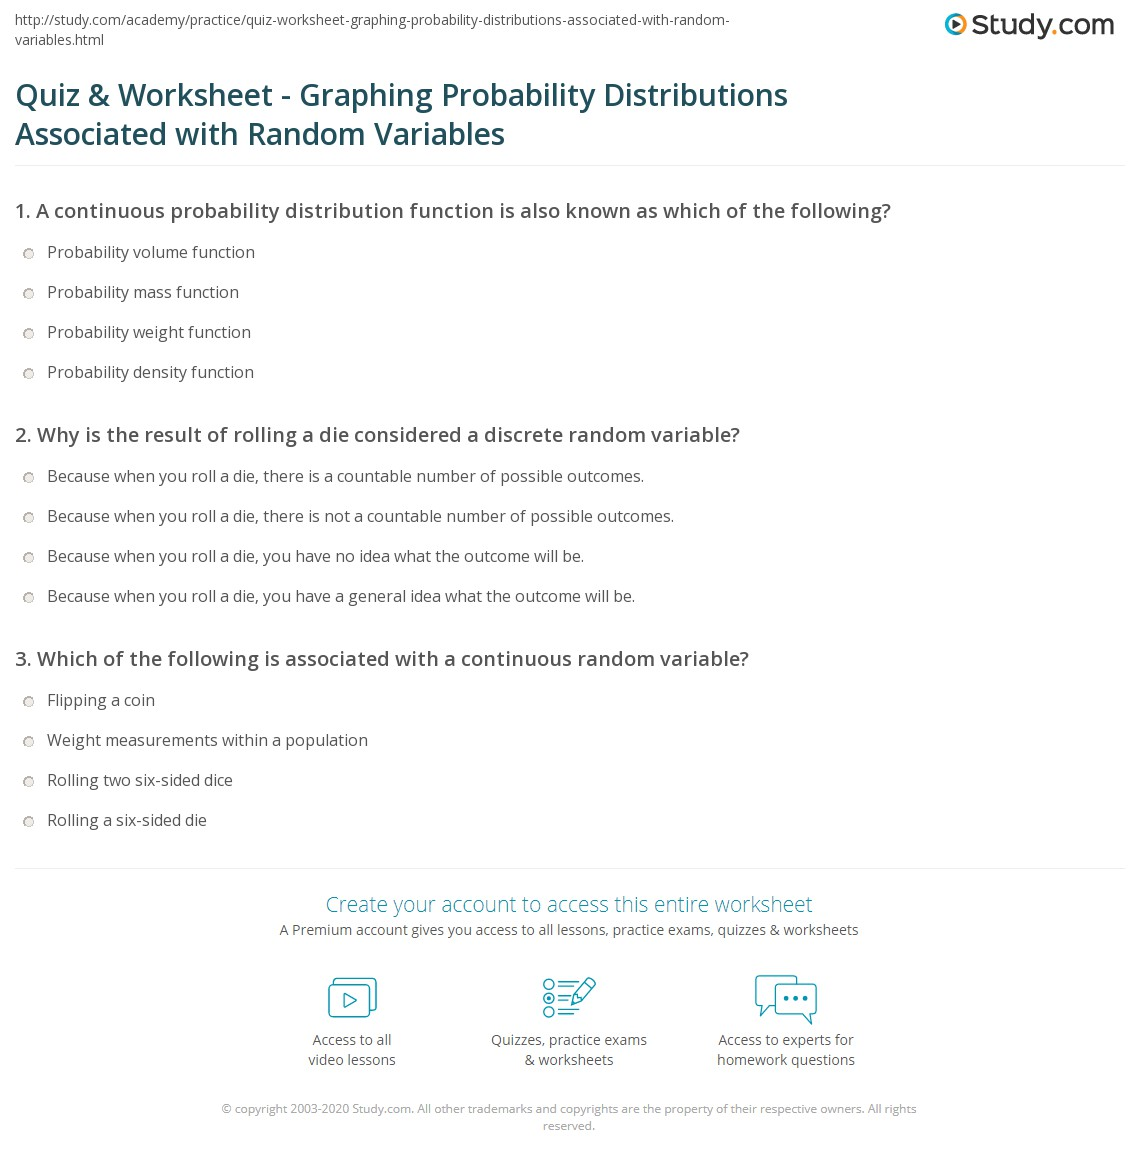 Quiz Worksheet Graphing Probability Distributions Associated With Random Variables Study Com